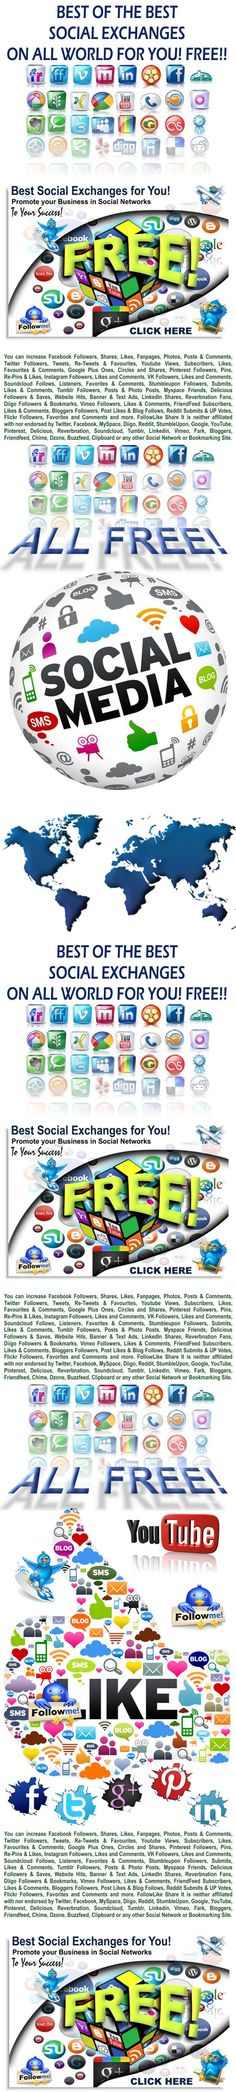 Social Exchanges * BEST OF THE BEST HERE! Only the best and trusted Social Exchanges. Quality and Security. * ALL FREE! Visit! > http://www.facinews.weebly.com